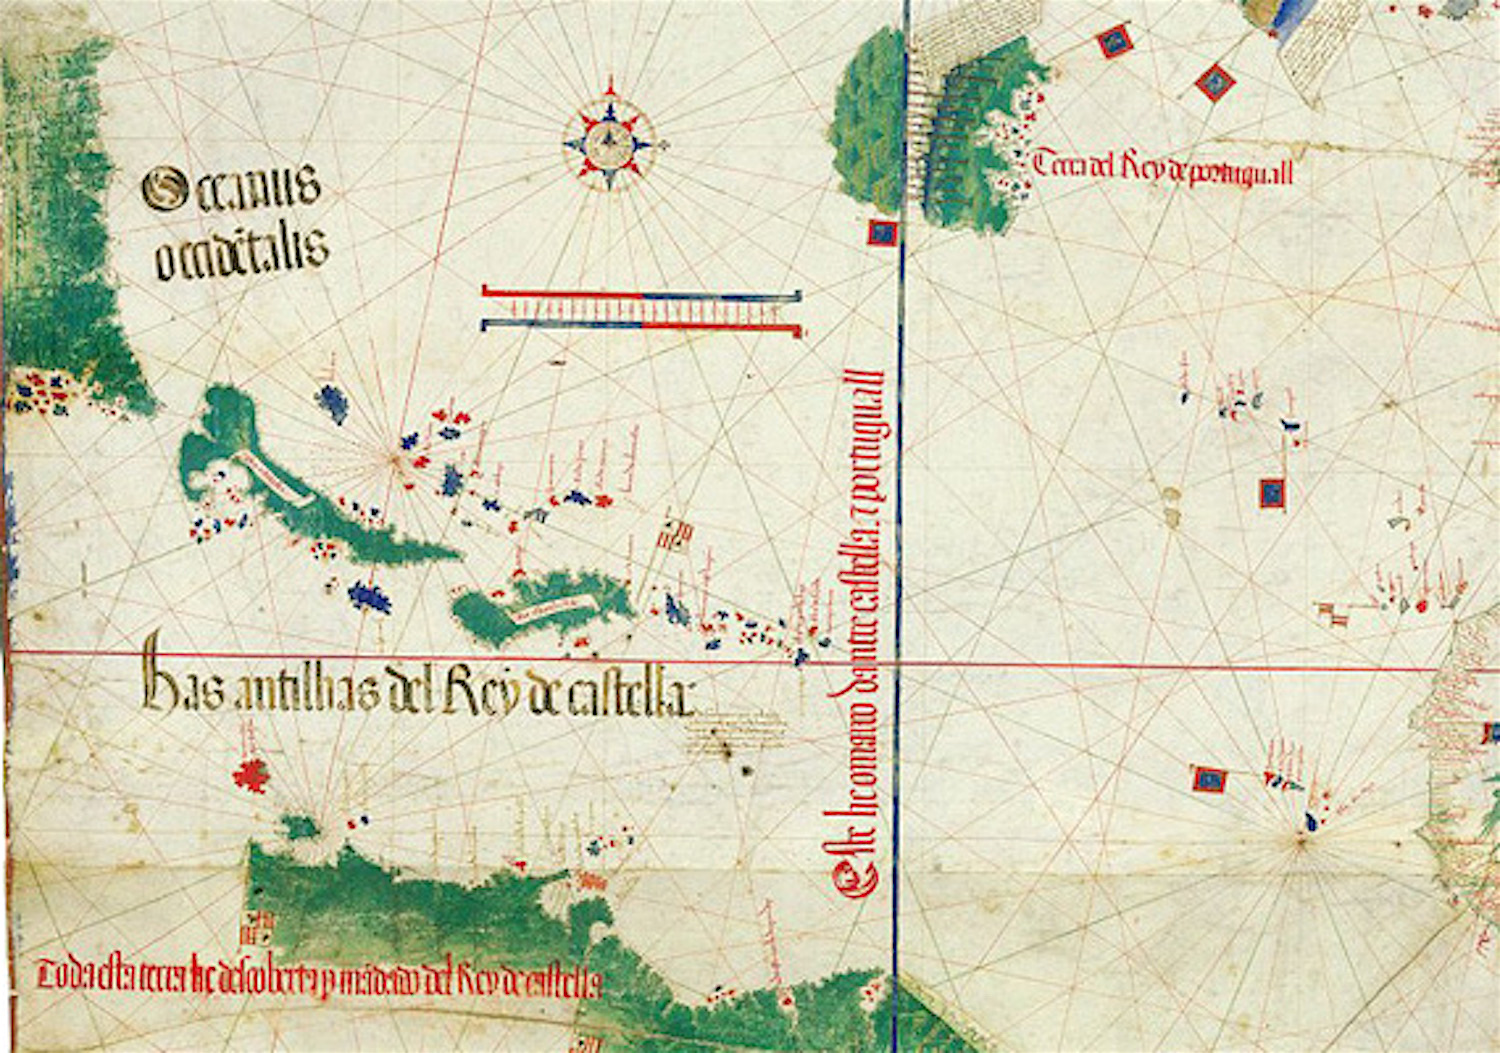 """Note the peninsula on the far upper left of this detail from the Cantino Planisphere. This is likely the peninsula of Florida, even though the region was not officially """"discovered"""" until 1513. Remember the Cantino Planisphere was drawn 1502. Note also the vertical line here dividing control of the region between Castile (Spain) and Portugal."""